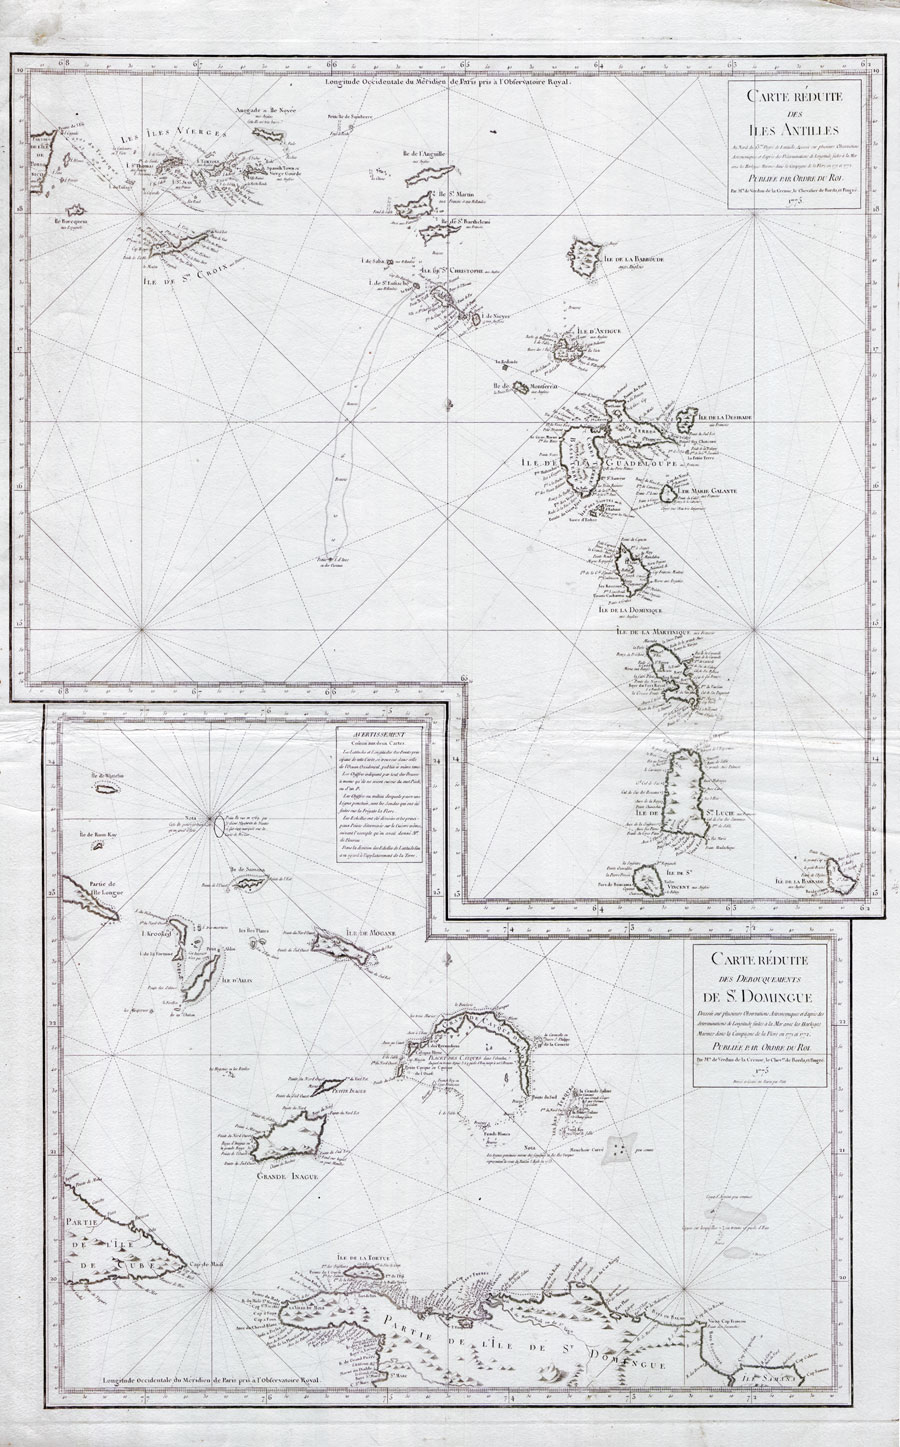 VERDUN DE LA CRENNE Carte Reduite des Isles Antilles - together with